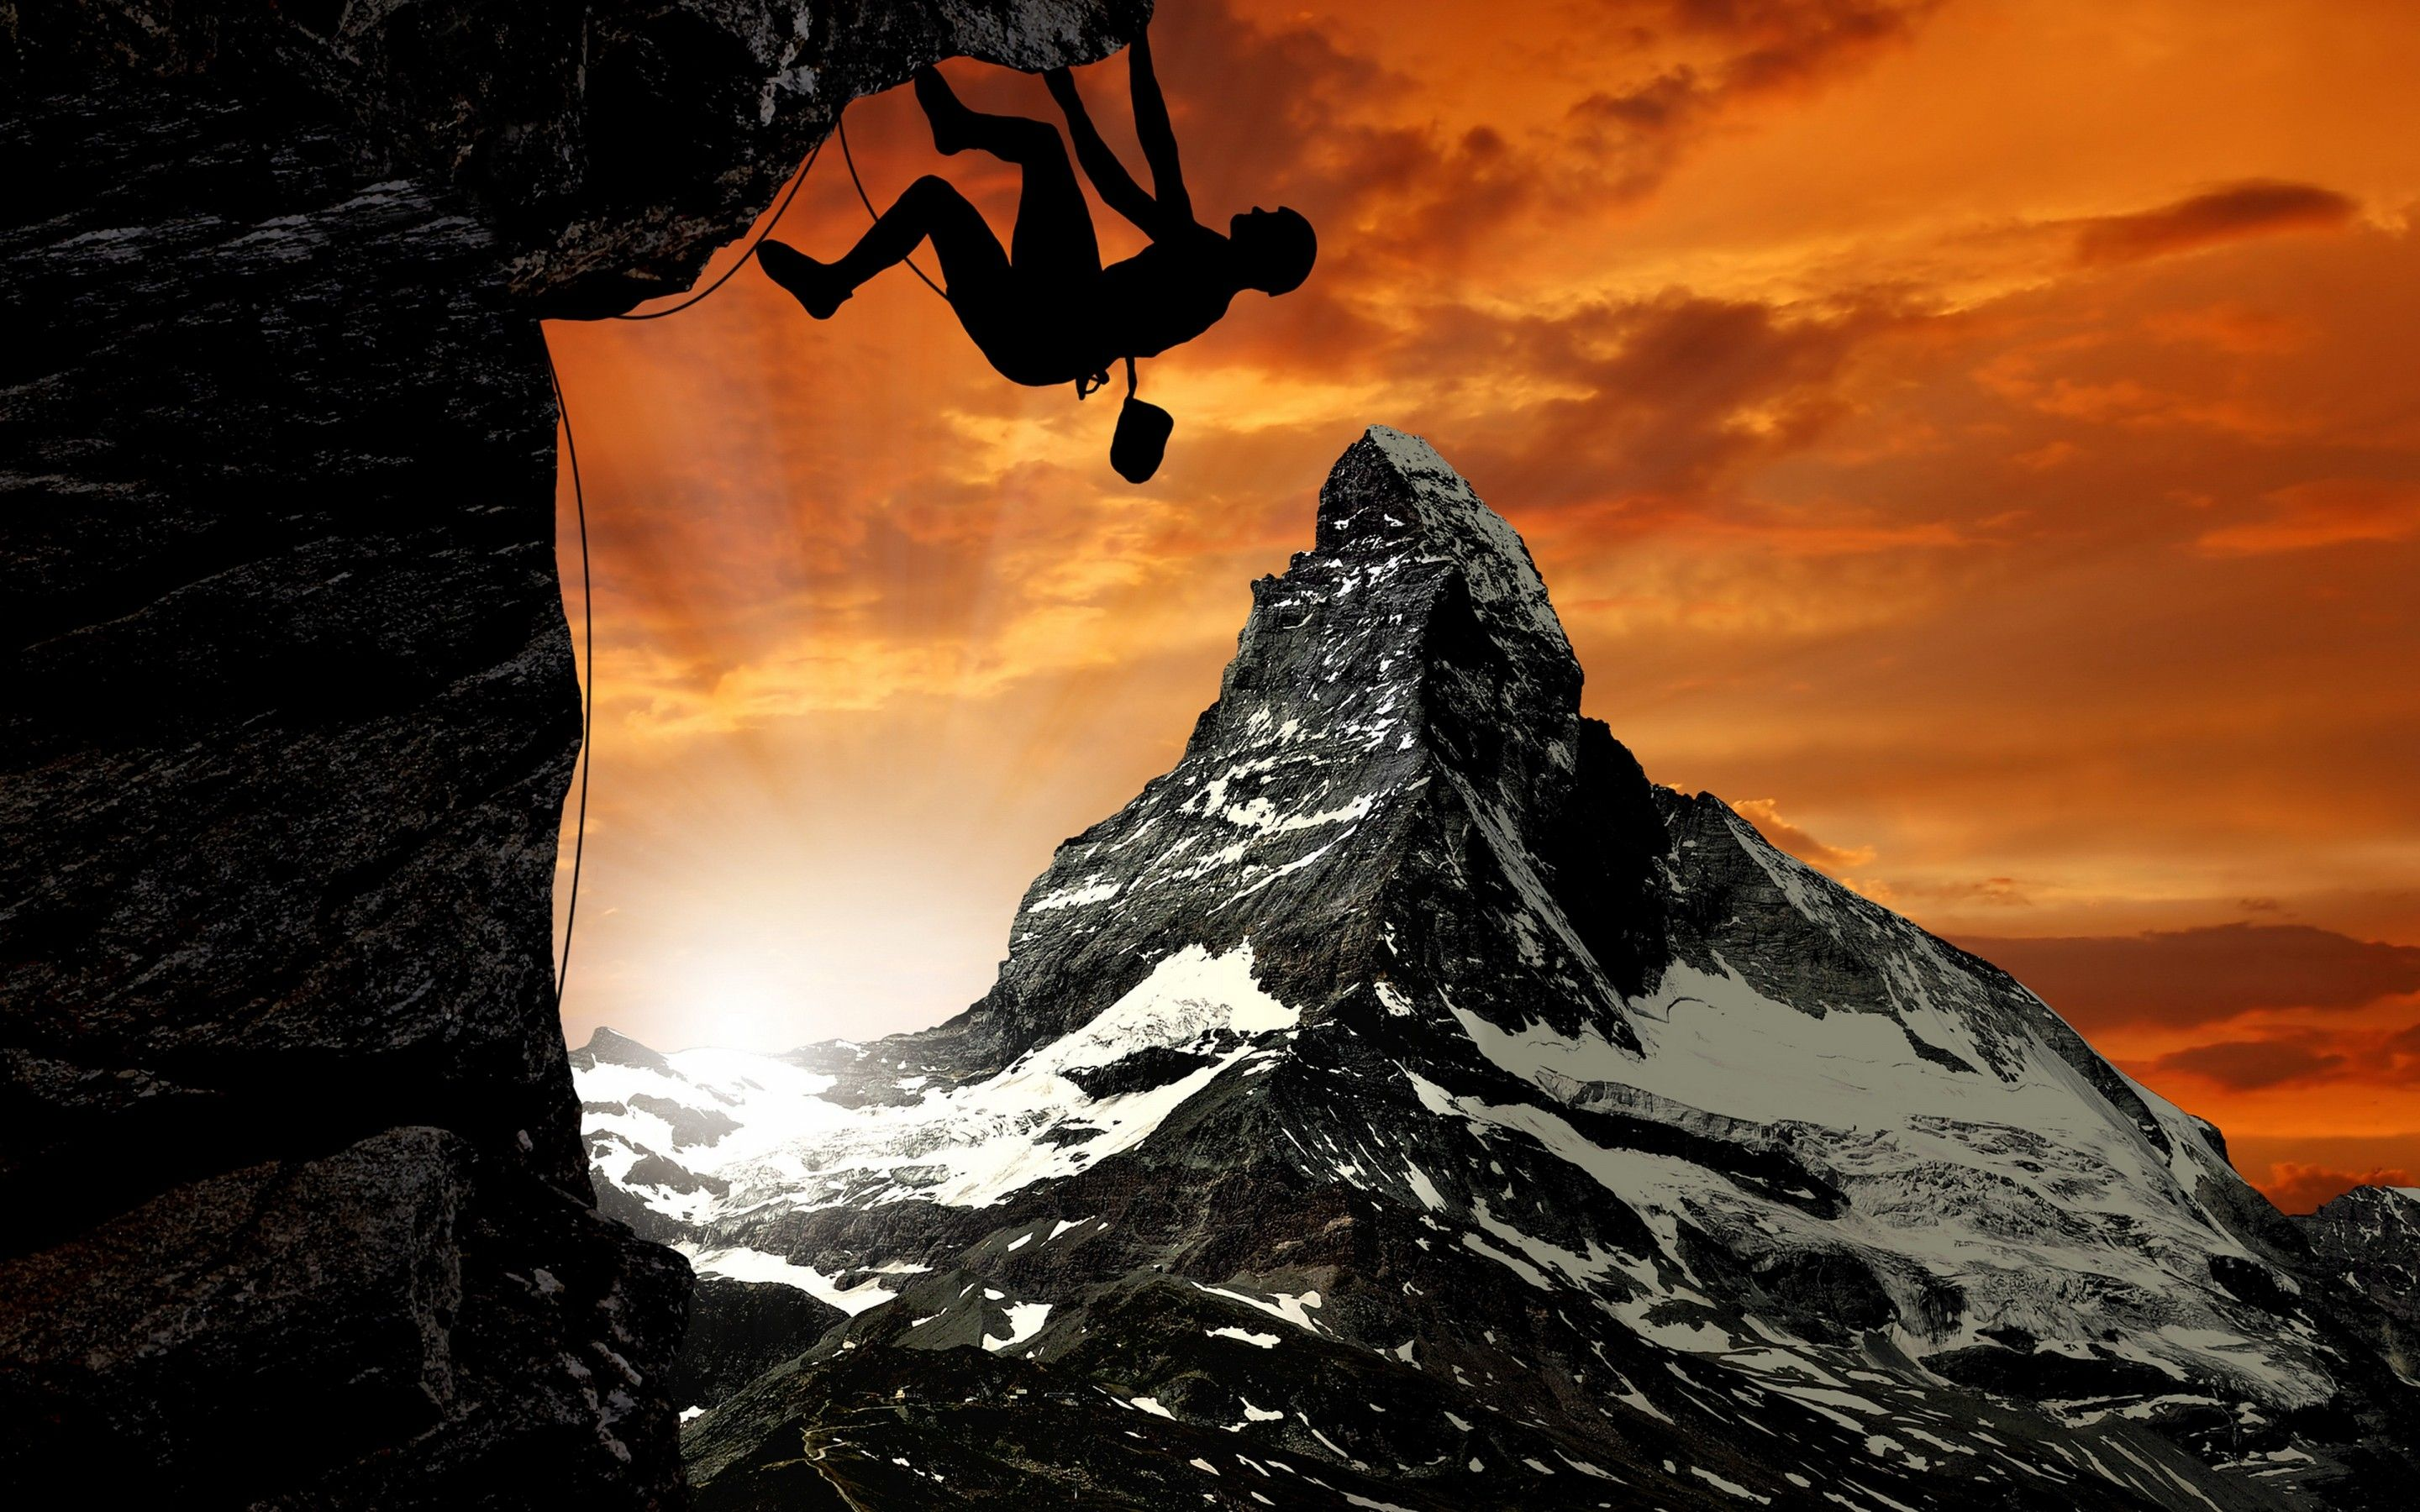 climbing wallpaper Collection | HD Wallpapers | Pinterest | Mountain  climbing, Hd wallpaper and Wallpaper